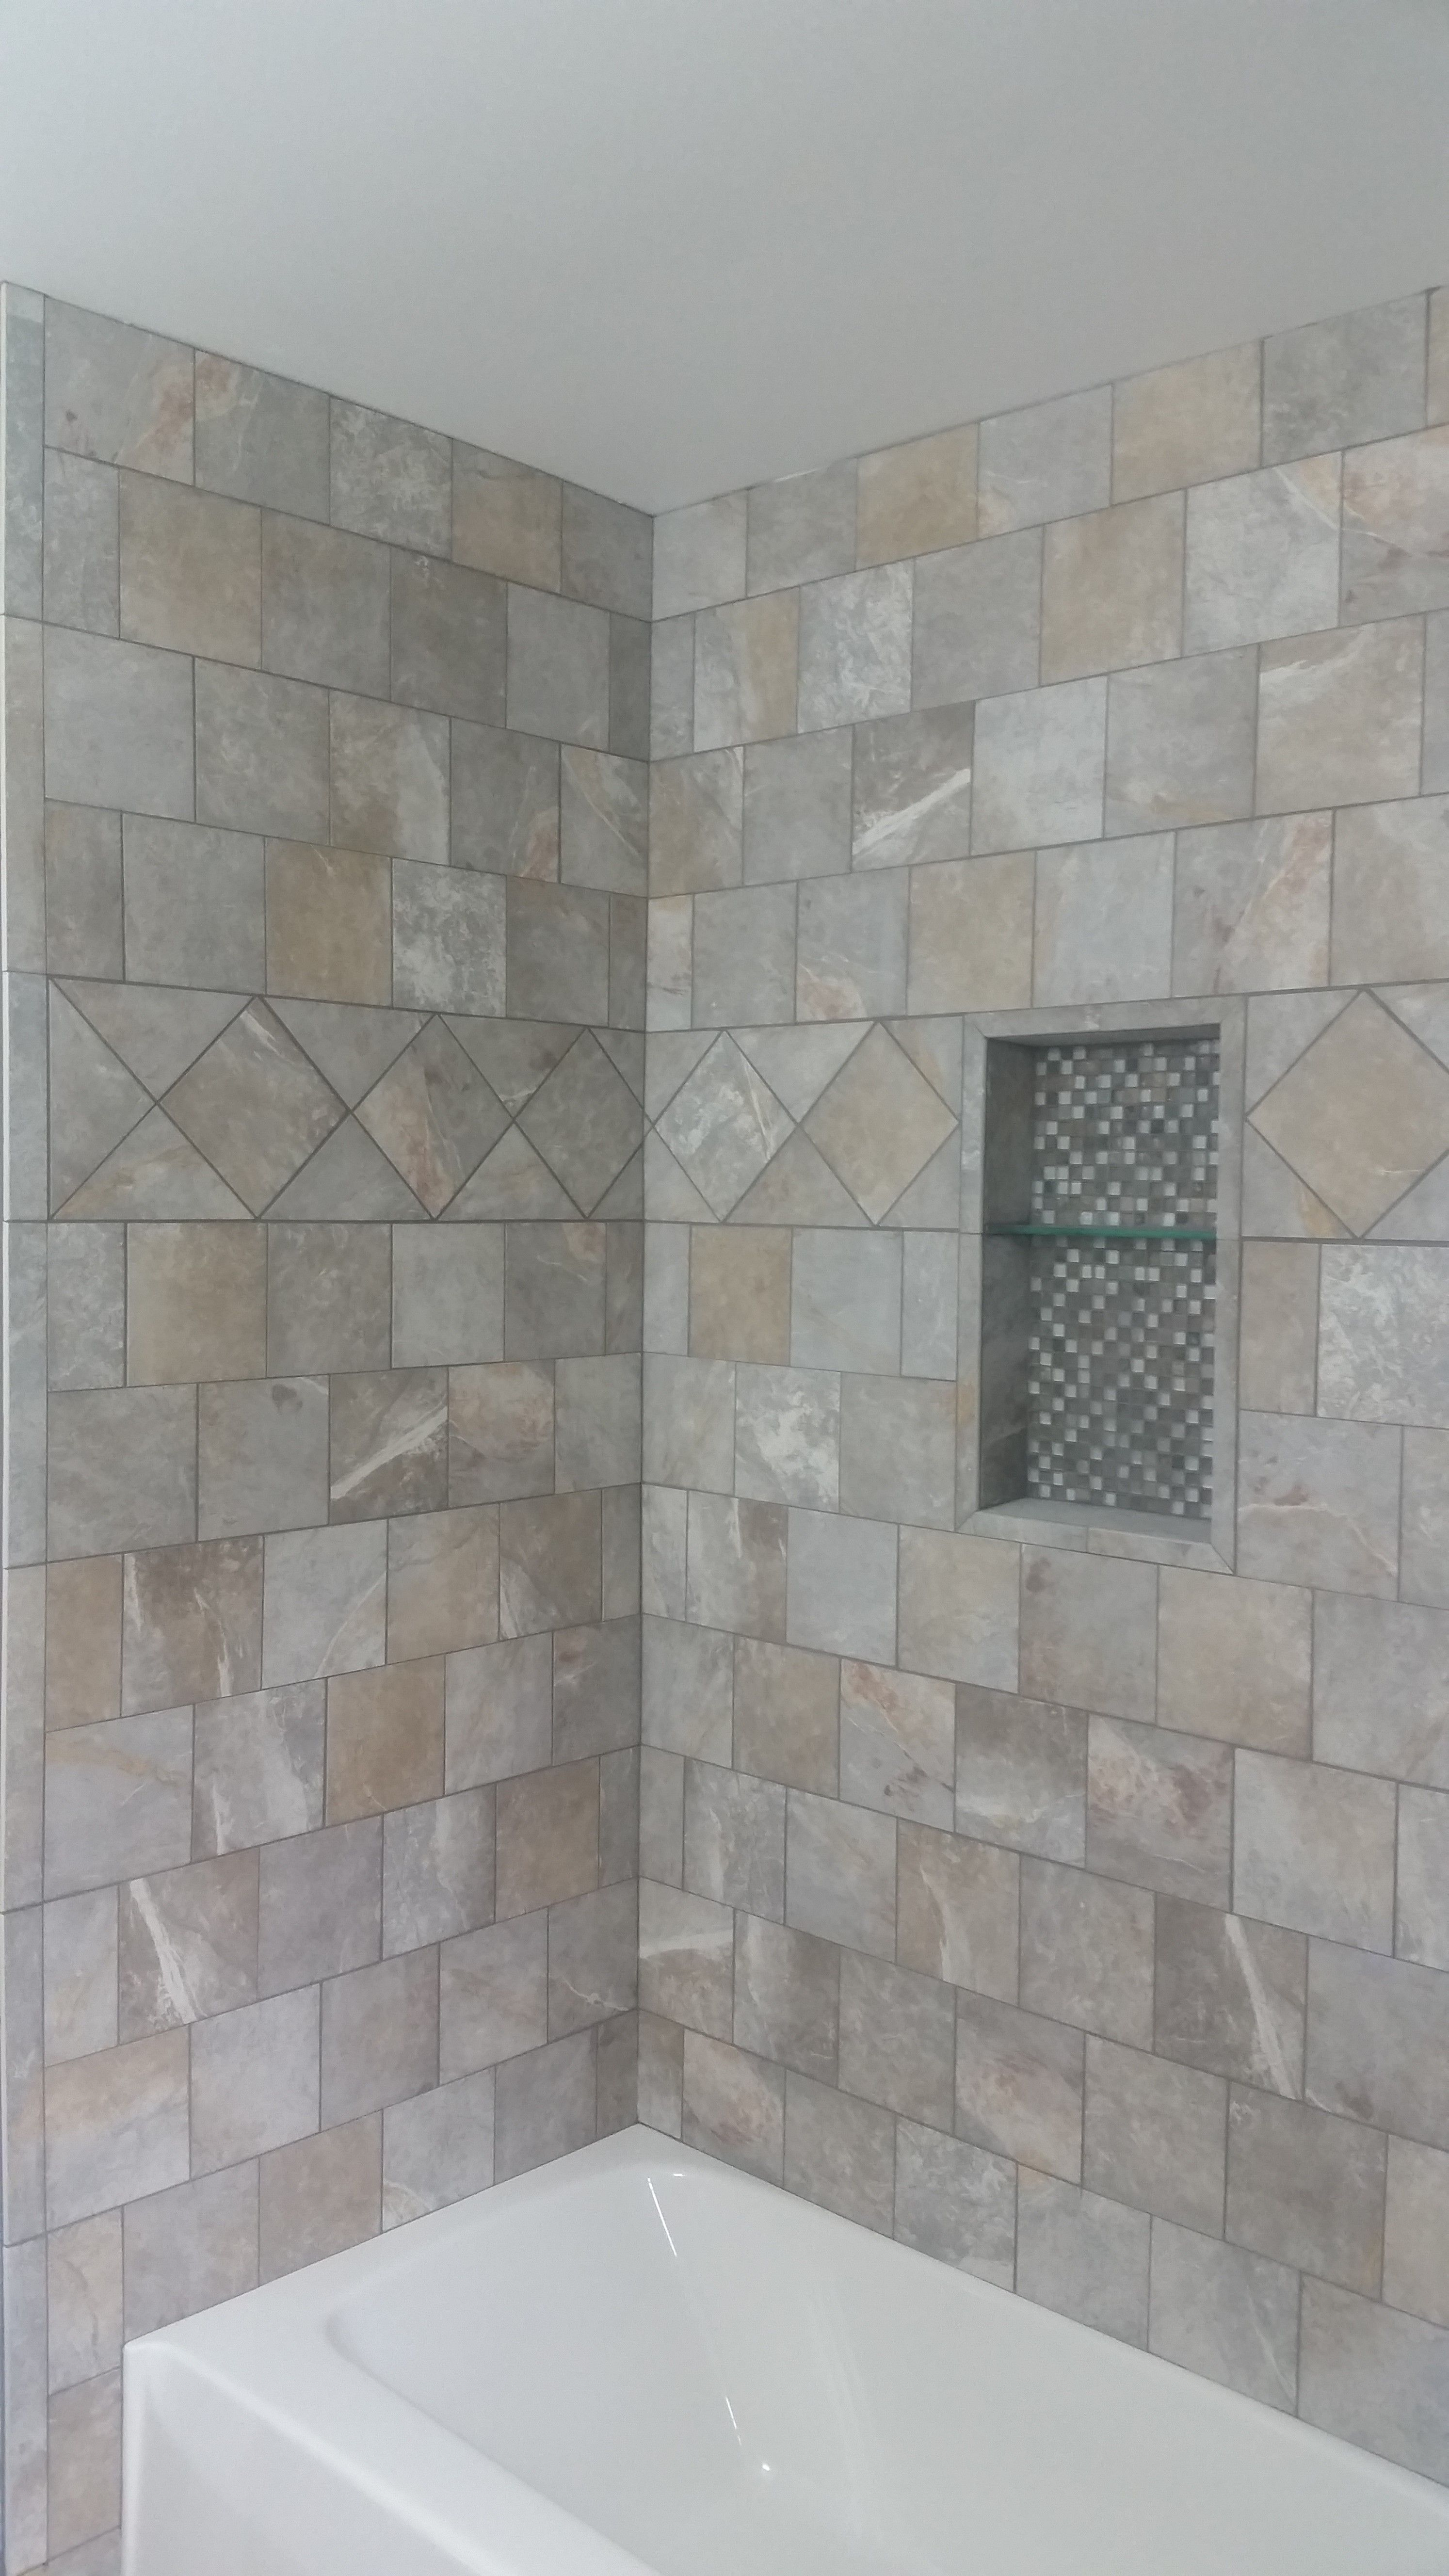 Tiling By Santana Com Waukesha Three Wall Tub Surround Using 6x6 Porcelain With A Running Bond P Bathroom Shower Walls Tile Tub Surround Bathrooms Remodel